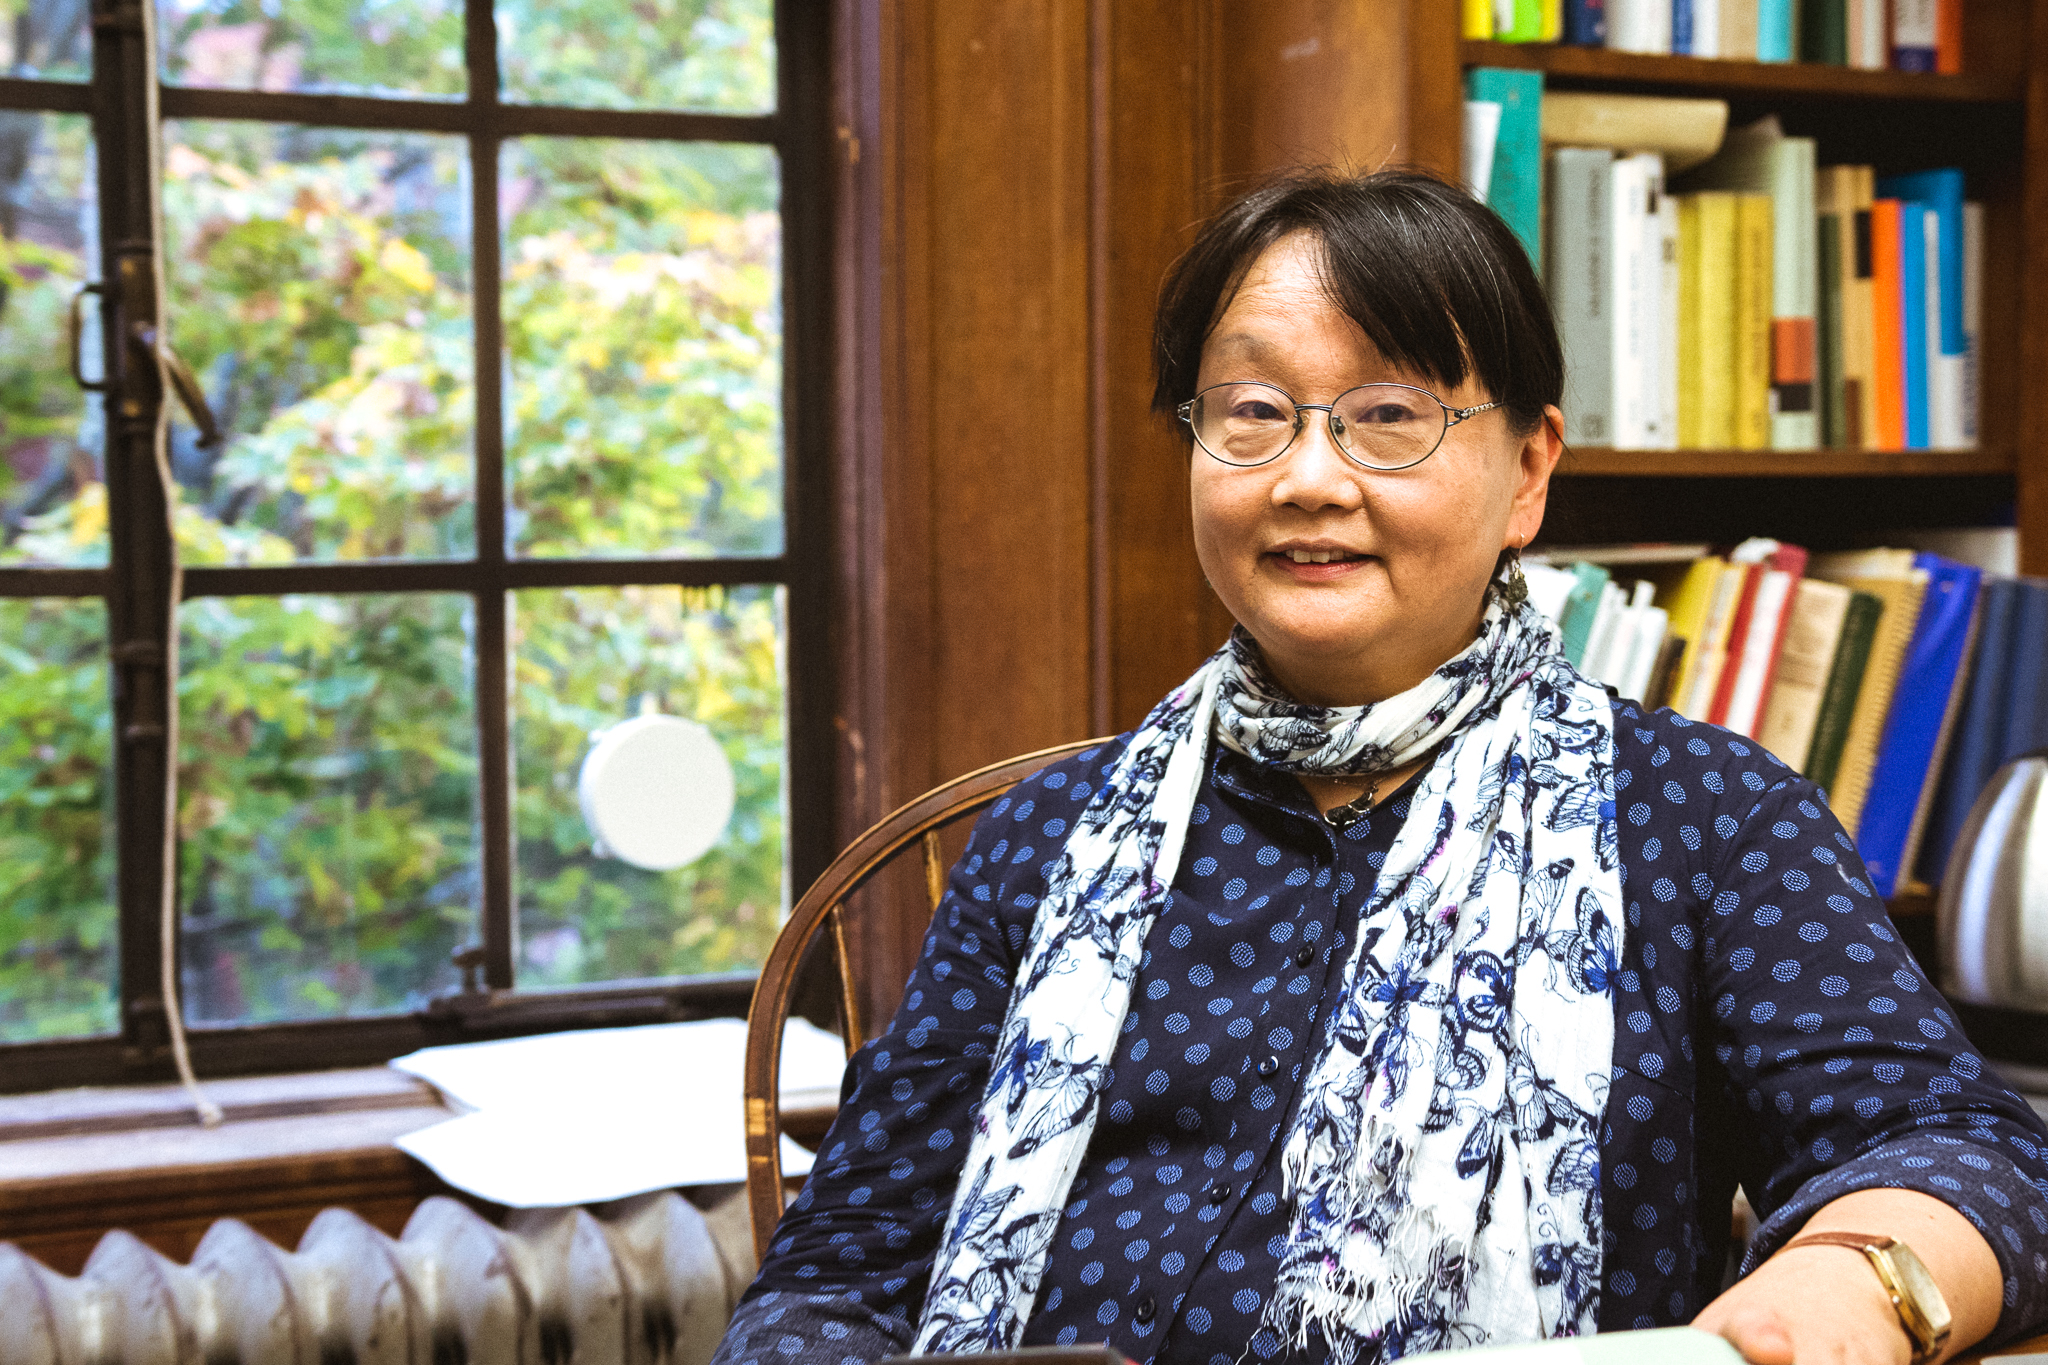 International Professor Profile: Masako Fidler